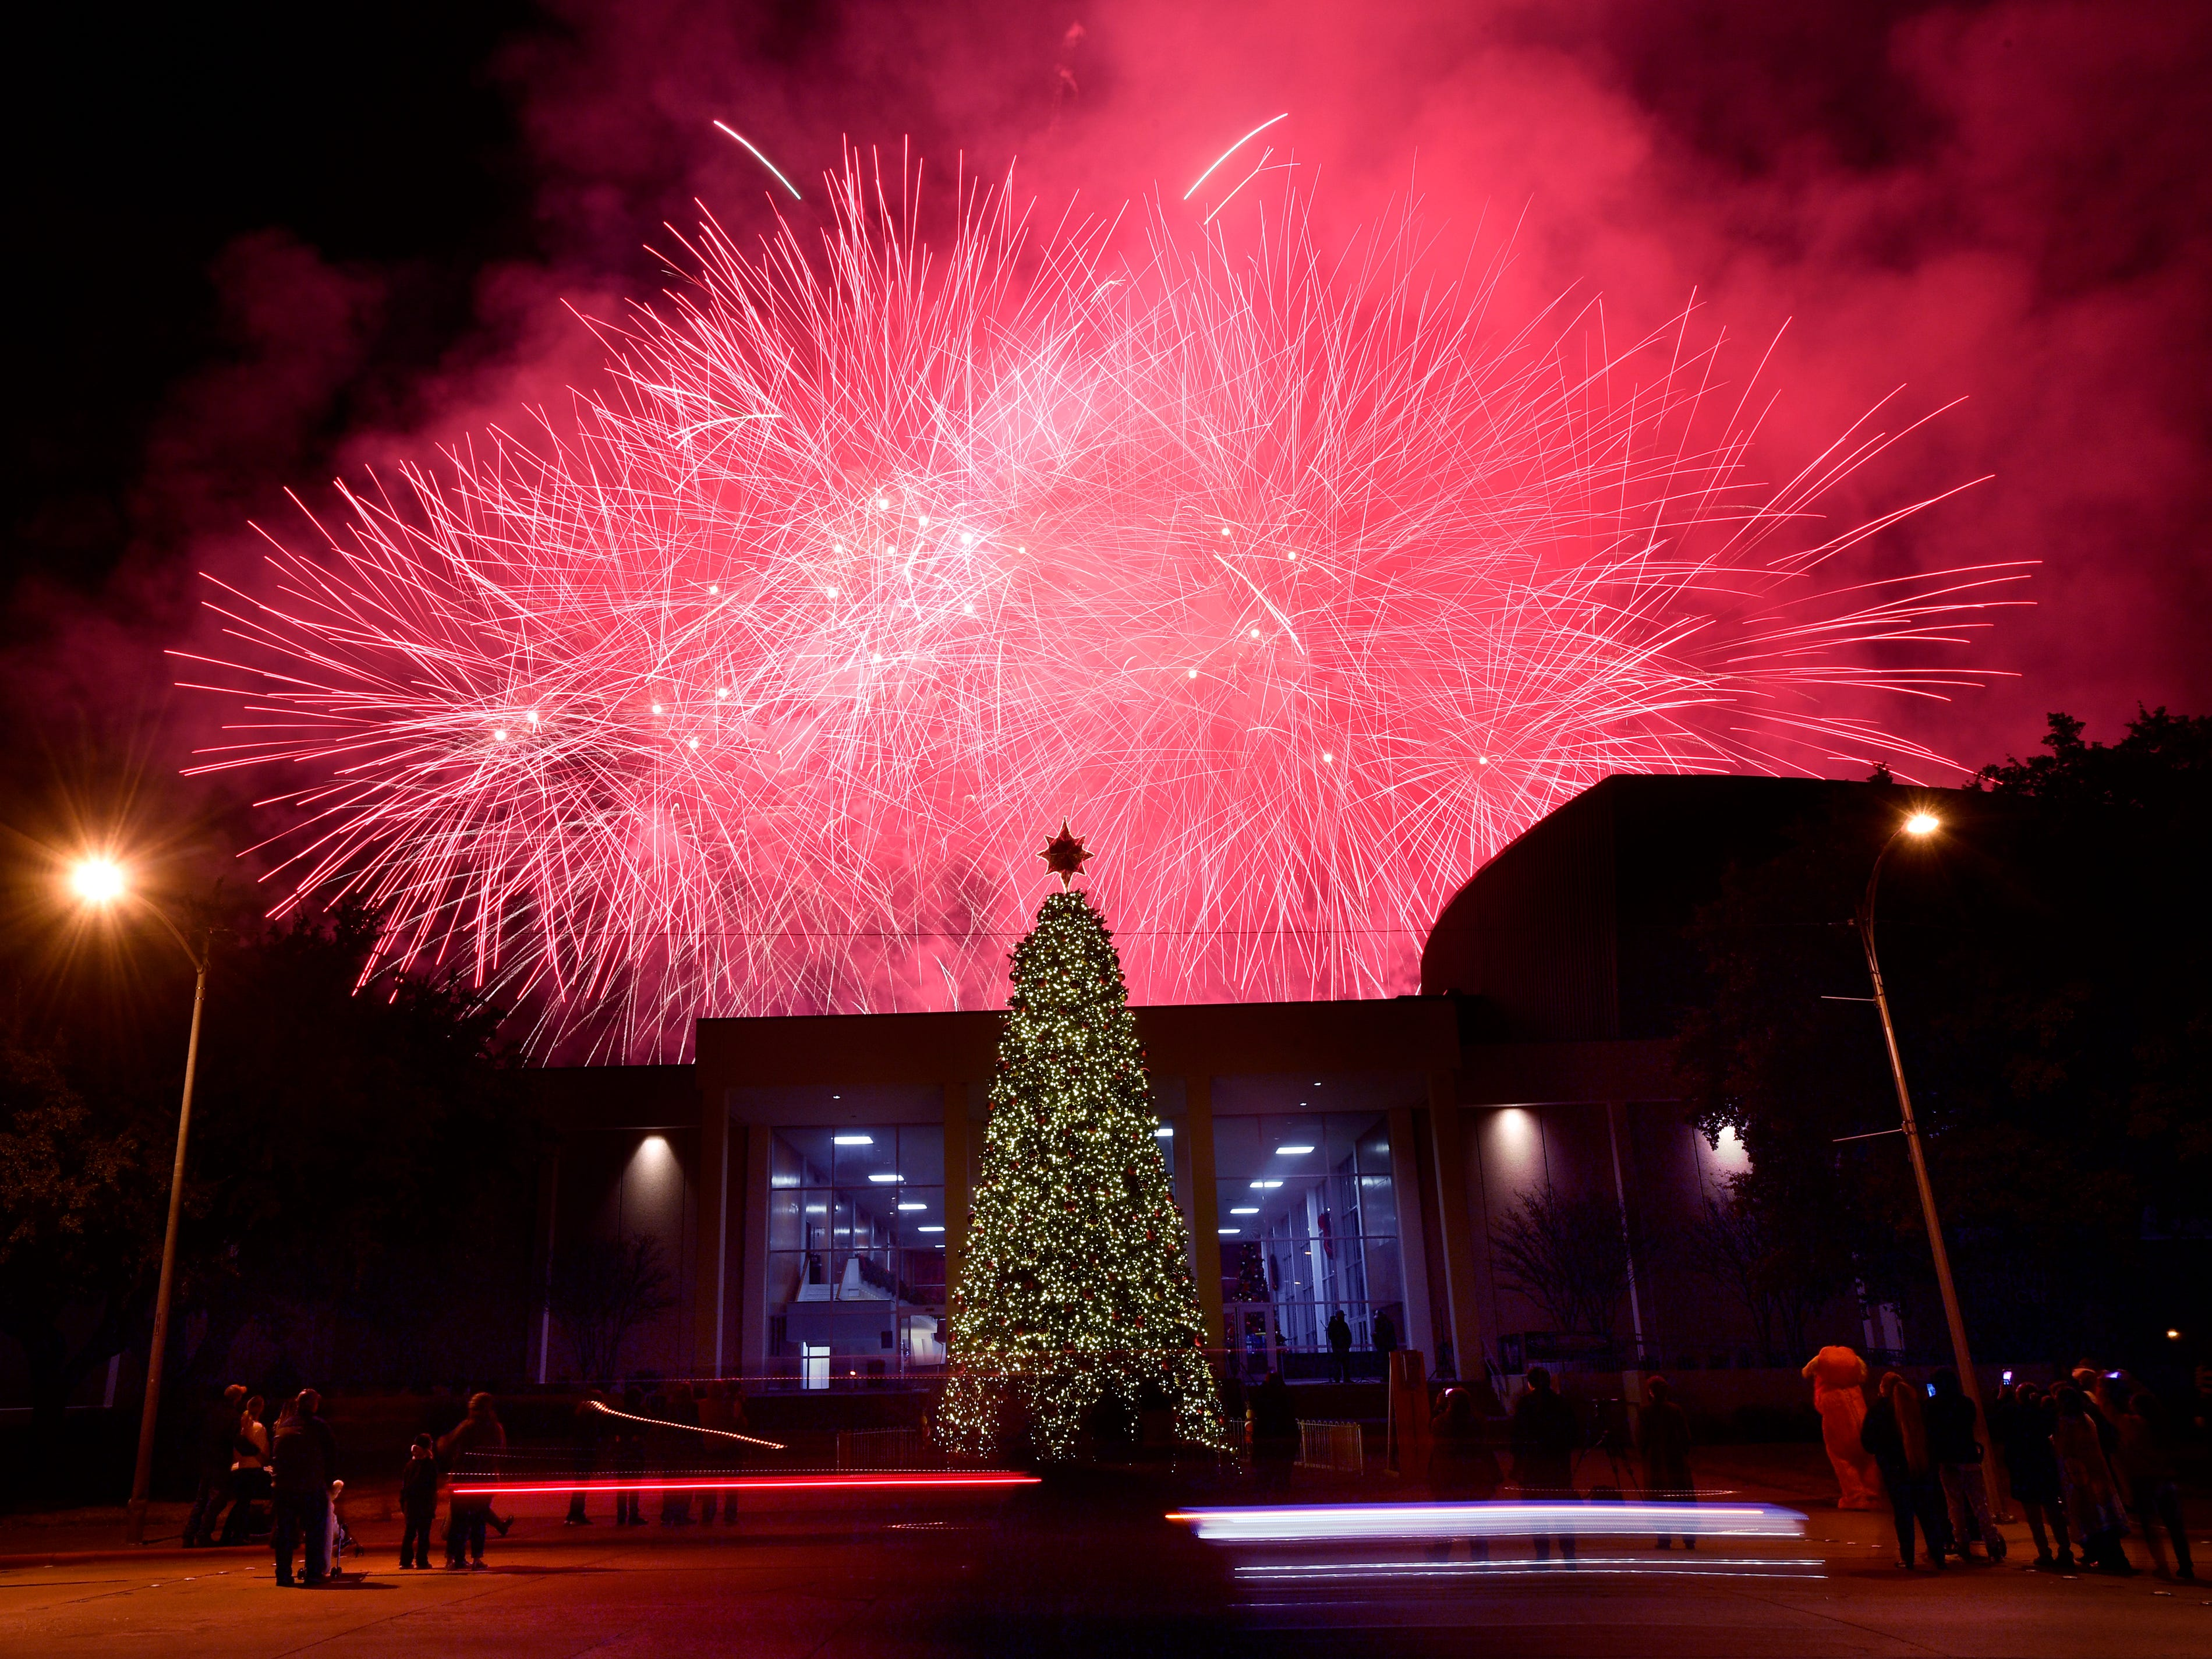 A car is blurred in the foreground as fireworks explode in the sky behind the Abilene Convention Center Monday Nov. 26, 2018 after the lighting of the city's Christmas tree.